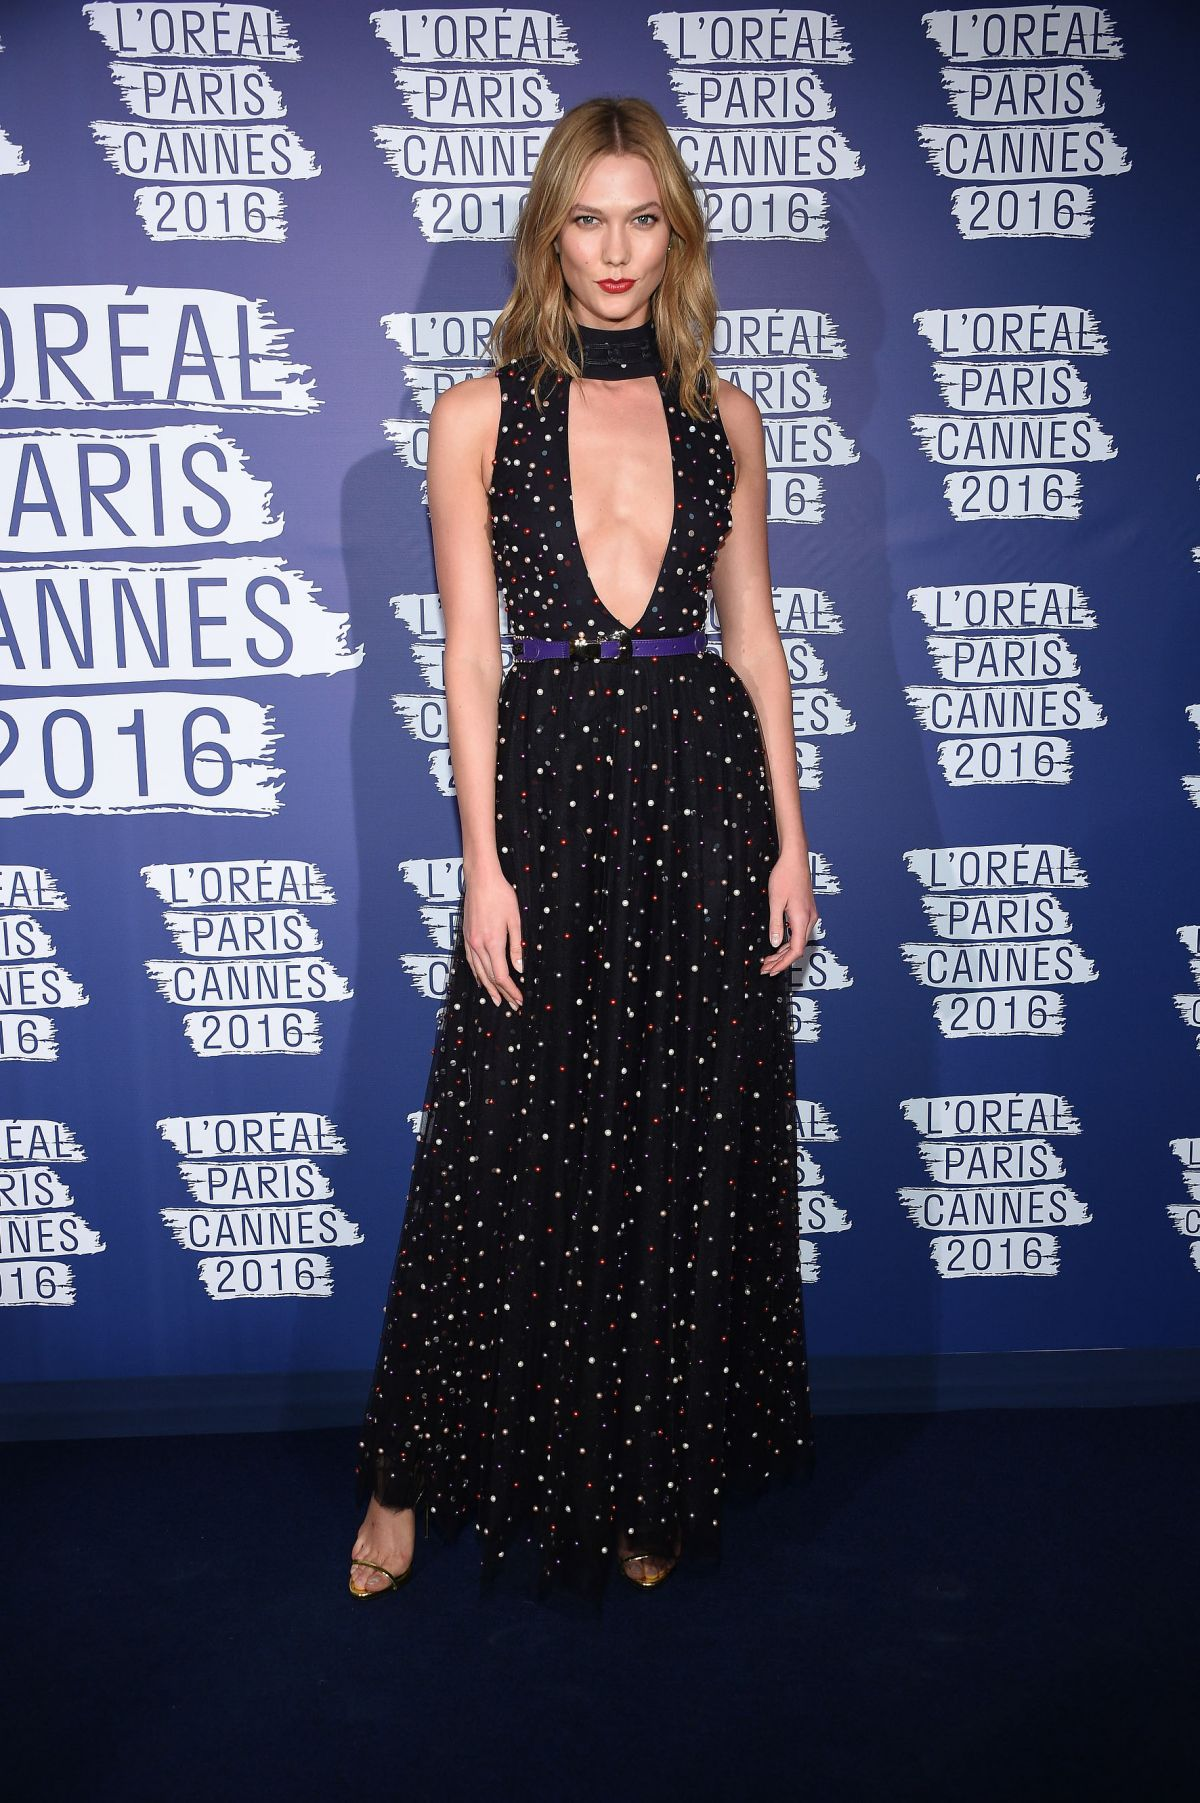 KARLIE KLOSS at L'Oreal Paris Blue Obsession Party at 2016 Cannes Film Festival 05/18/2016